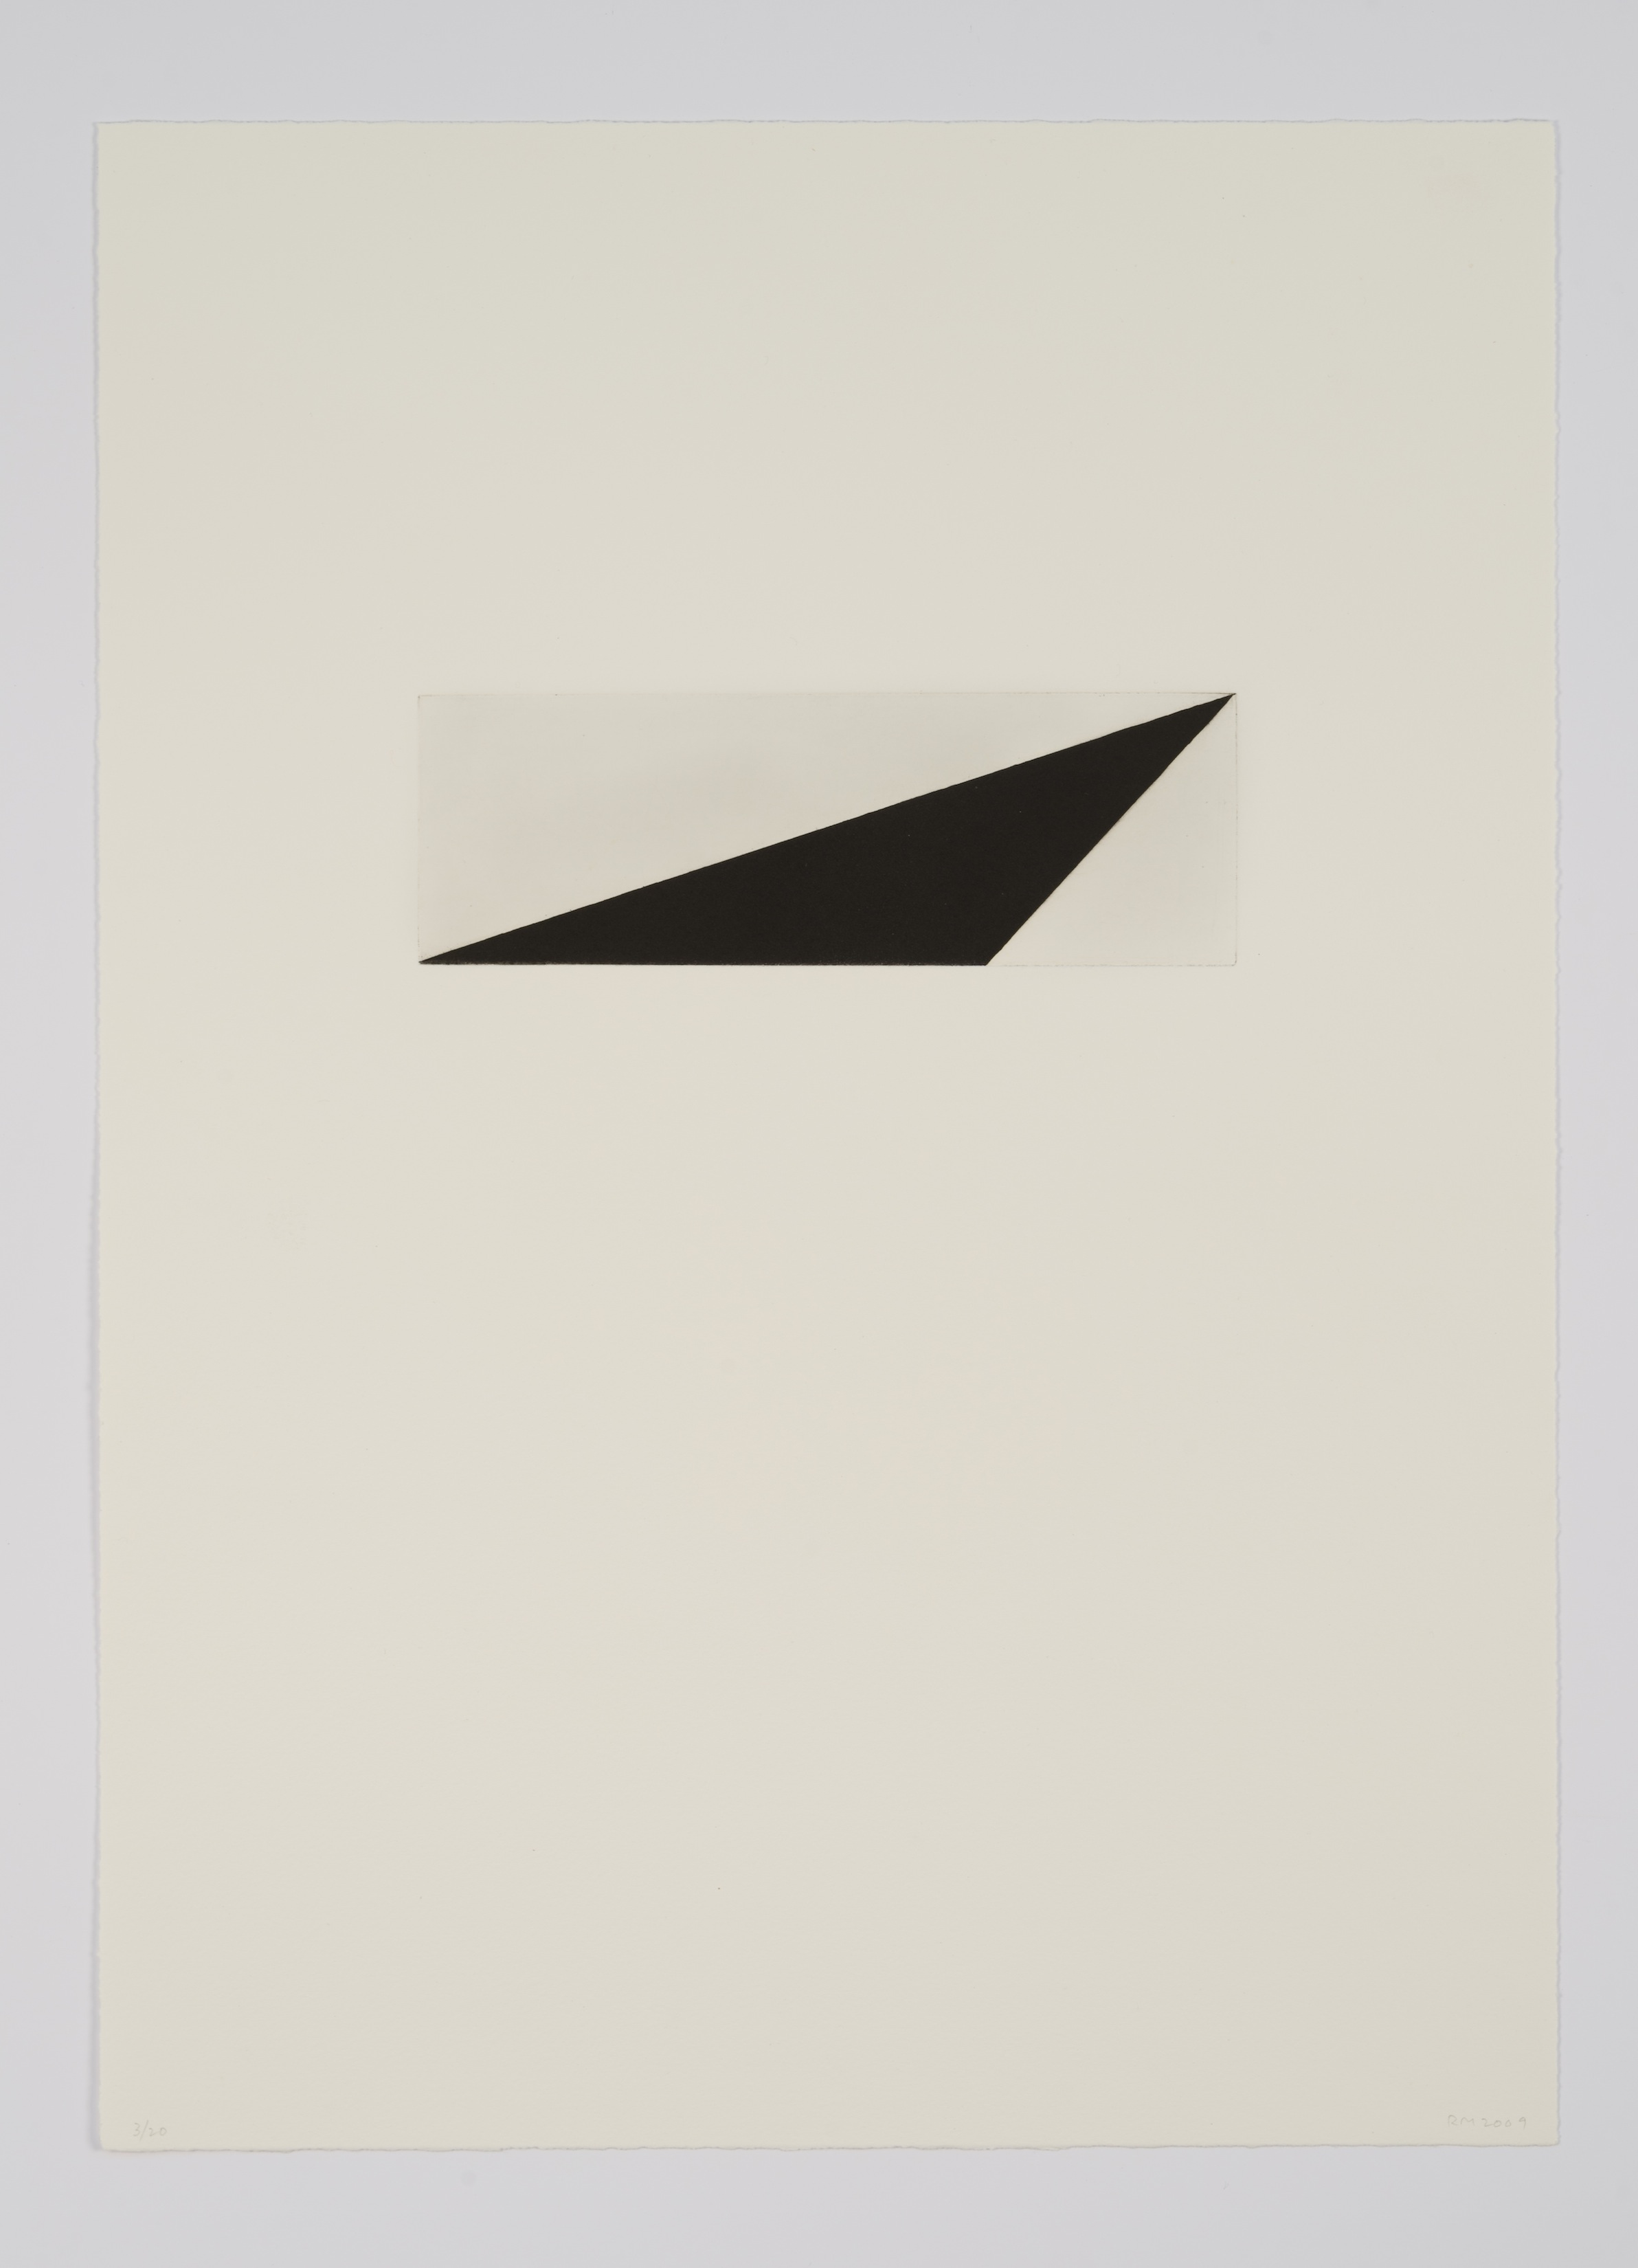 Robert Moskowitz, Untitled, 2009, Etching with aquatint, ed. 20, image:7 7/8 x 2 9/16 inches, sheet: 19 1/2 x 14 inches, RMO0905  7/12  Lawrence Markey Inc.